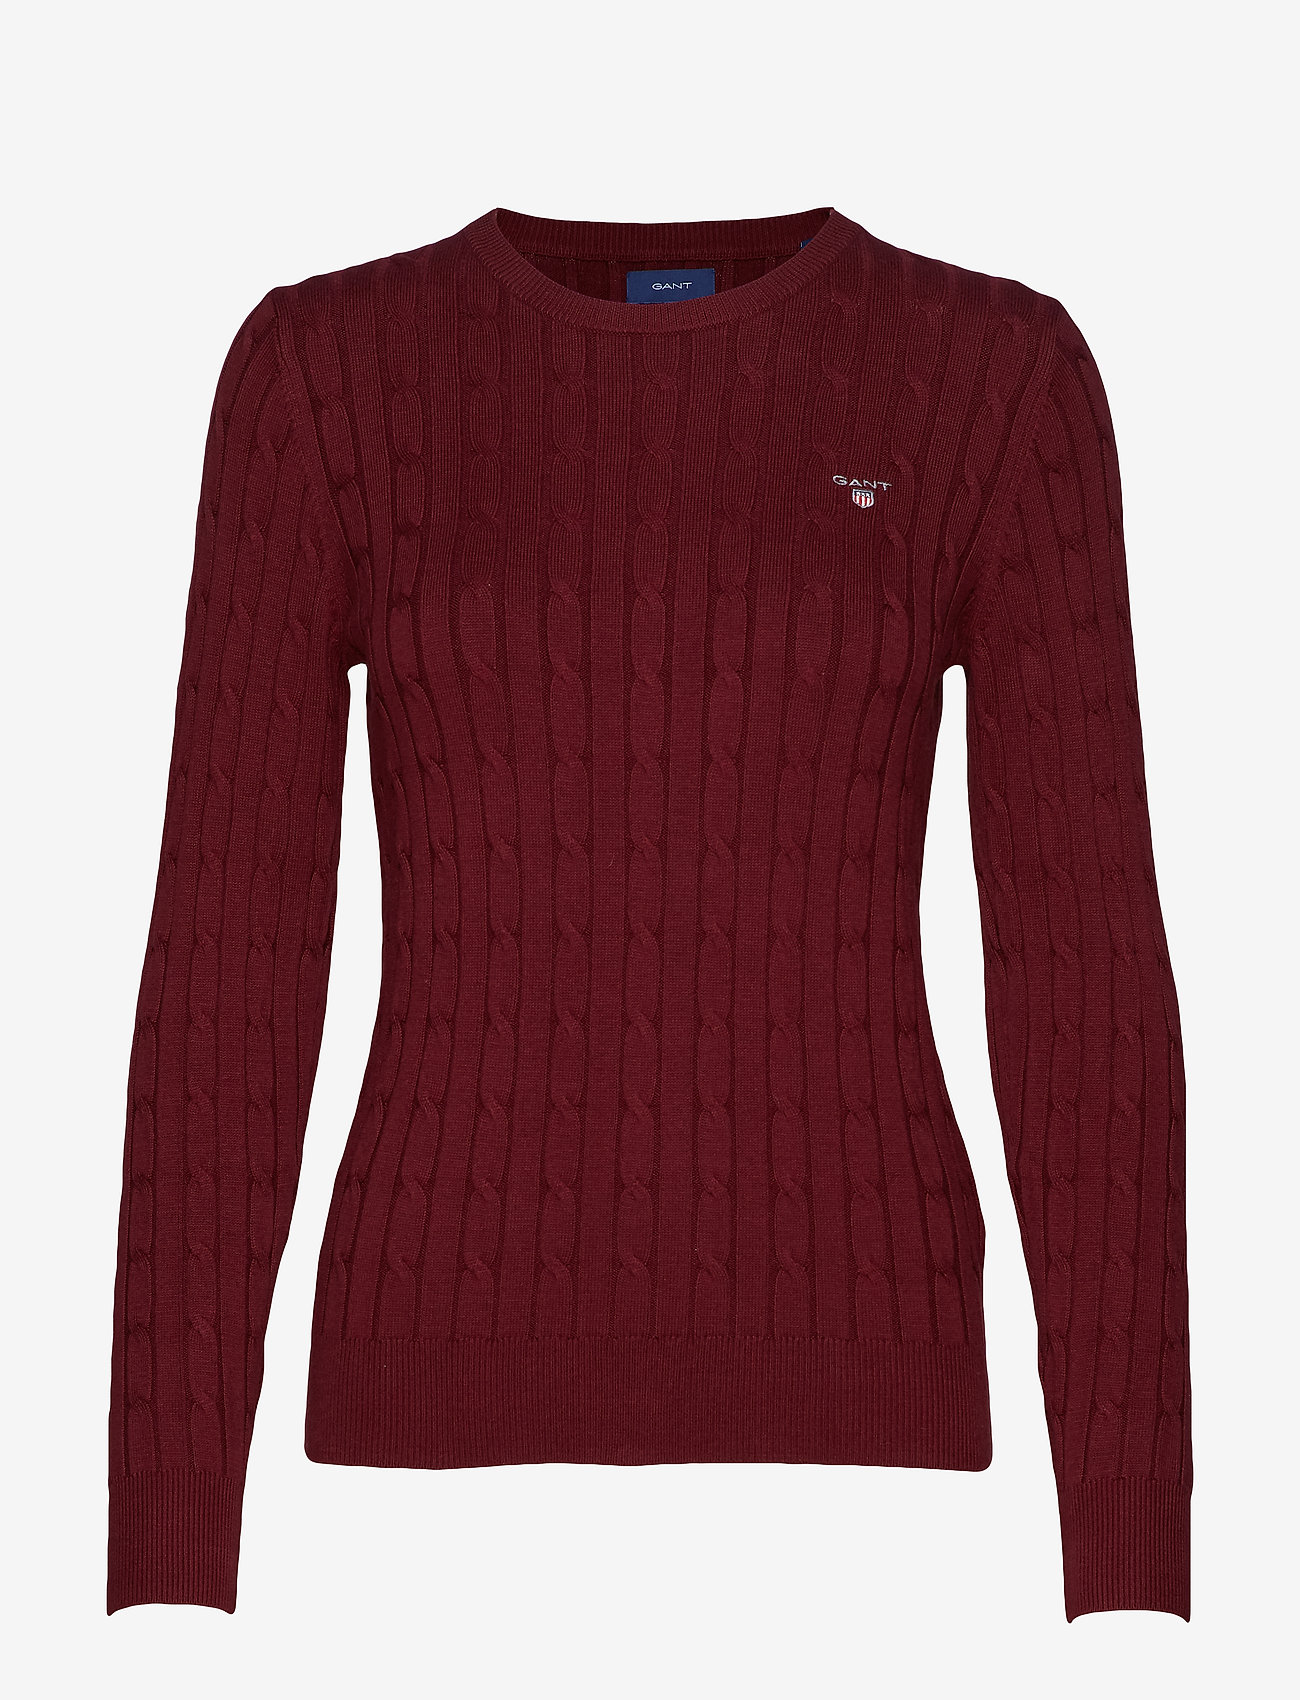 GANT - STRETCH COTTON CABLE C-NECK - jumpers - port red - 0